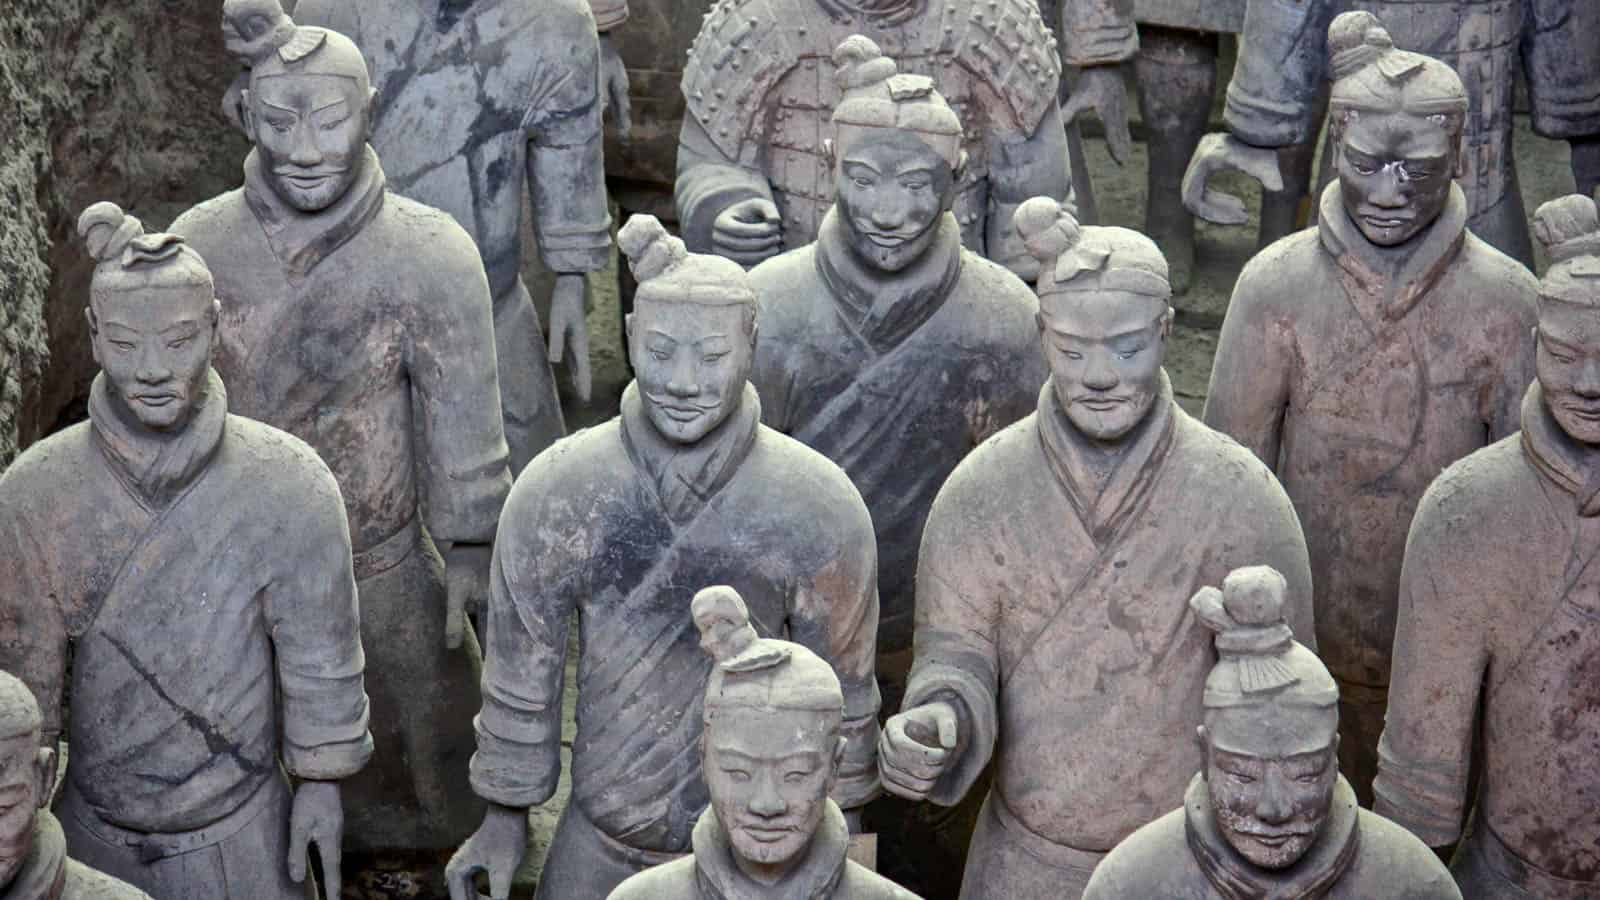 Army of the Terracotta Warriors in Xi'an China